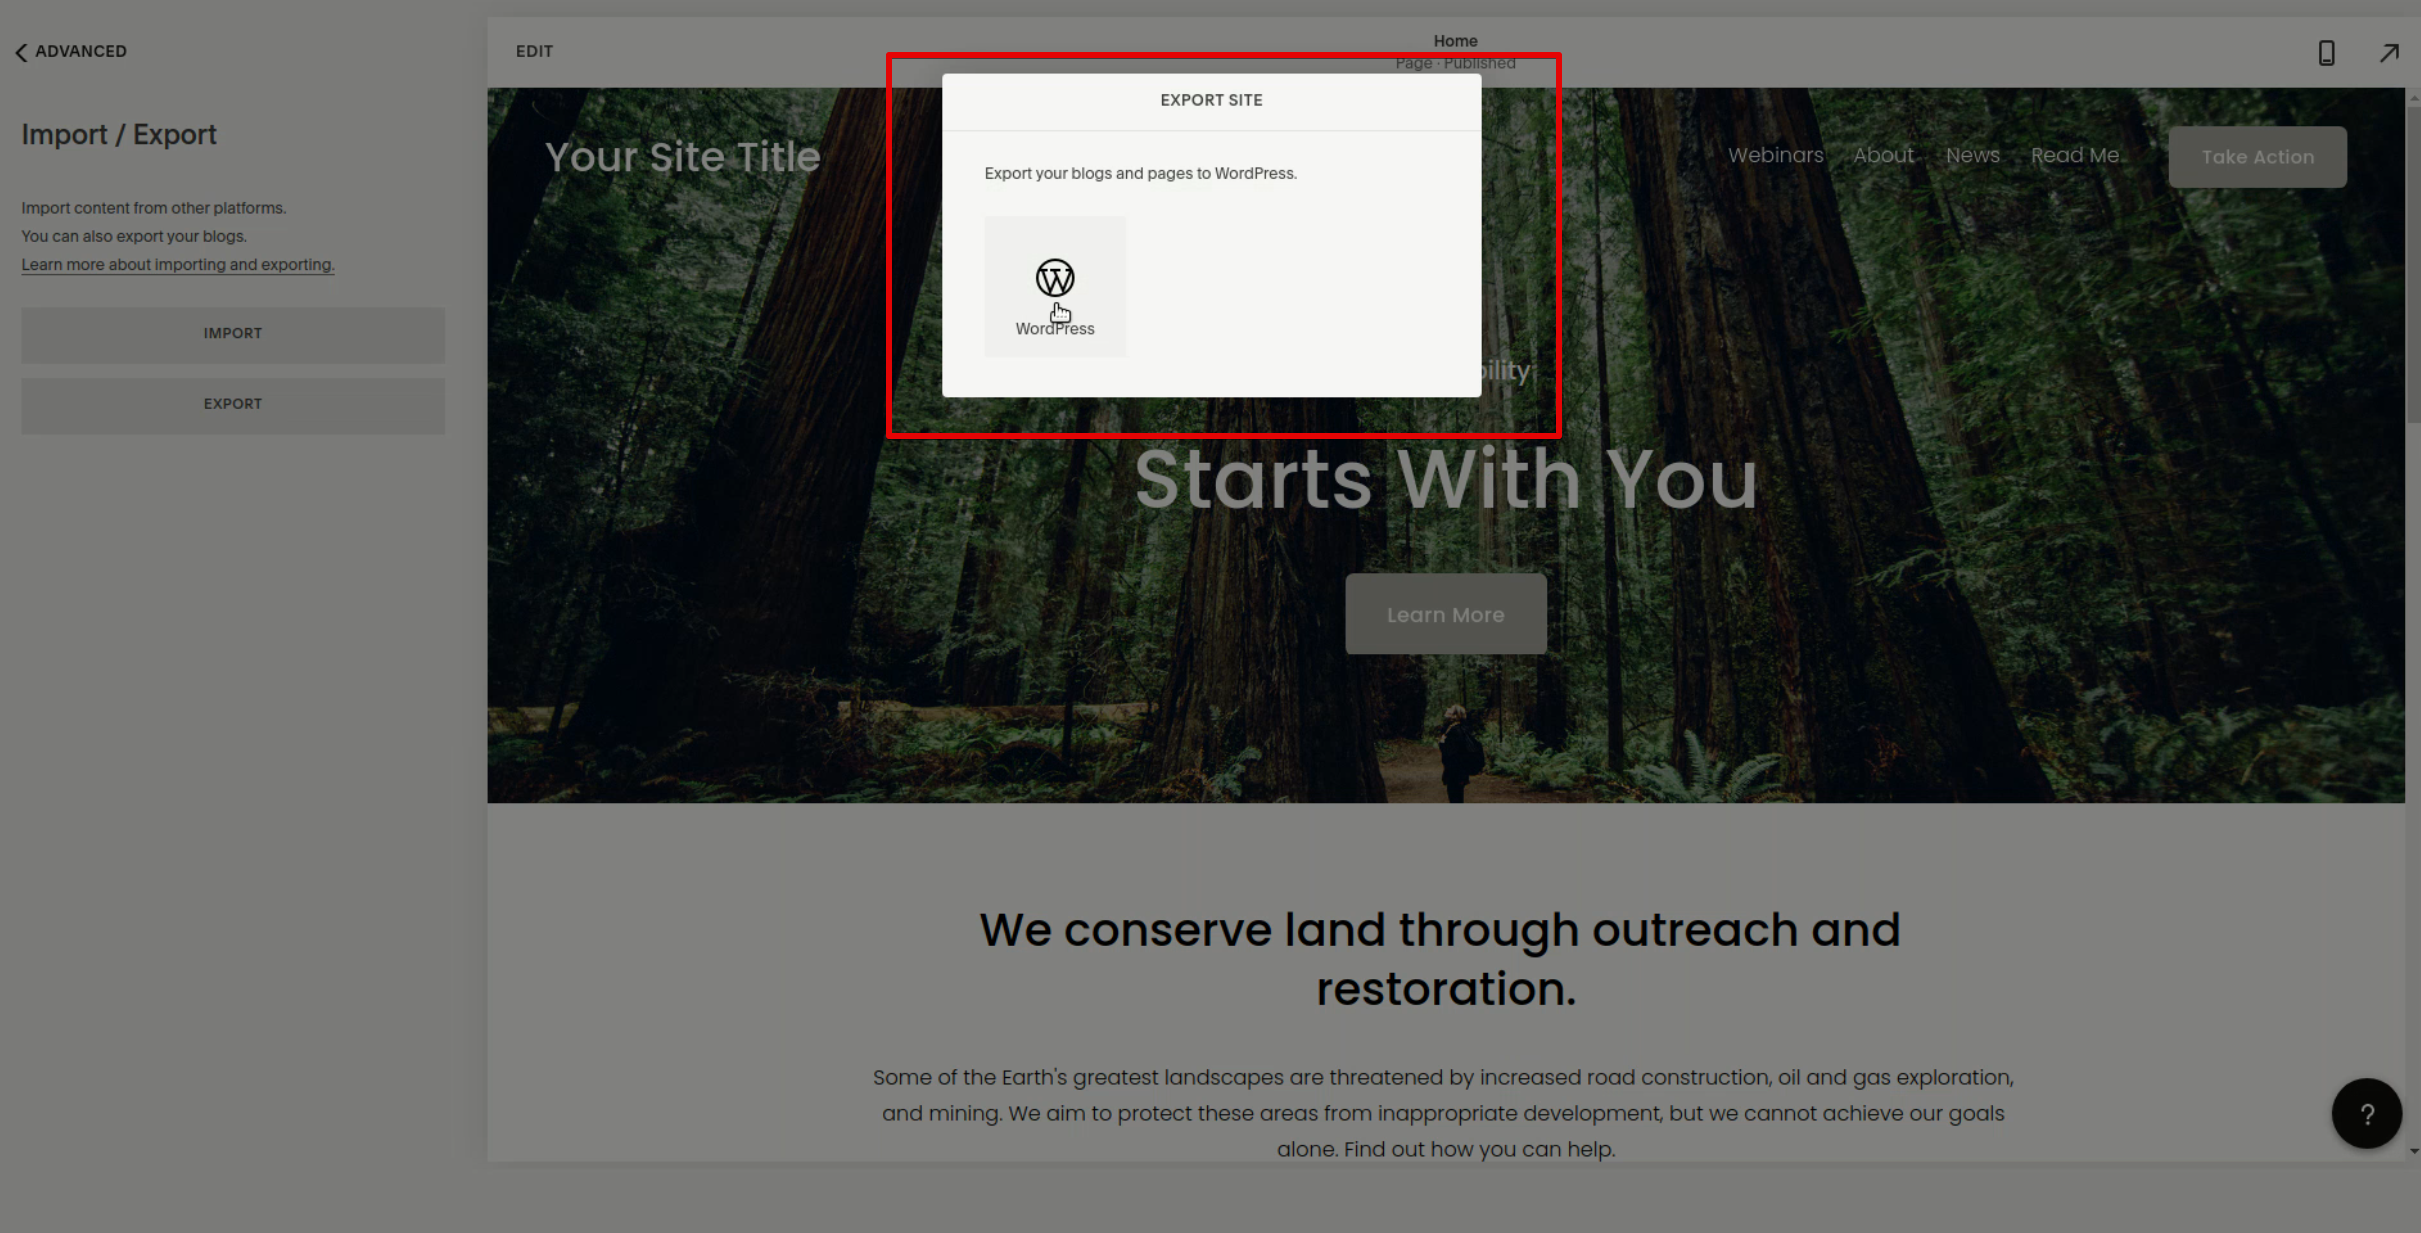 popup with the WordPress logo